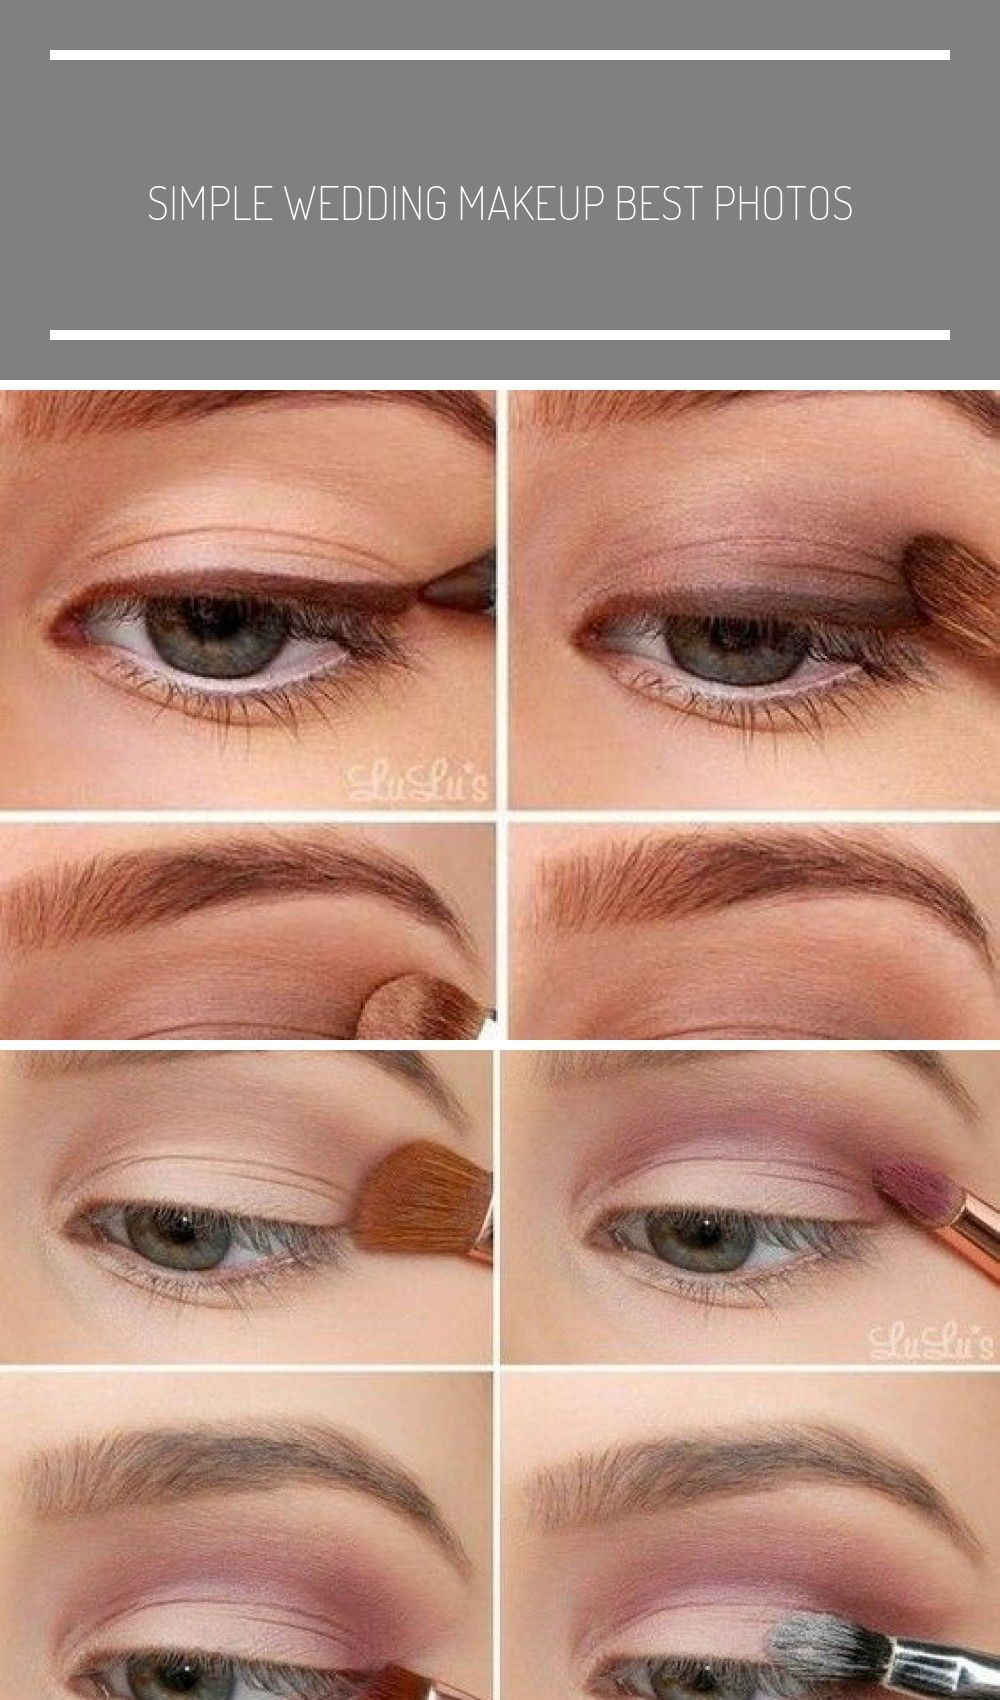 simple wedding makeup best photos - wedding makeup  - cuteweddingideas.com #make up looks for brown eyes ideas eyeshadows simple wedding makeup best photos #browneyeshadow